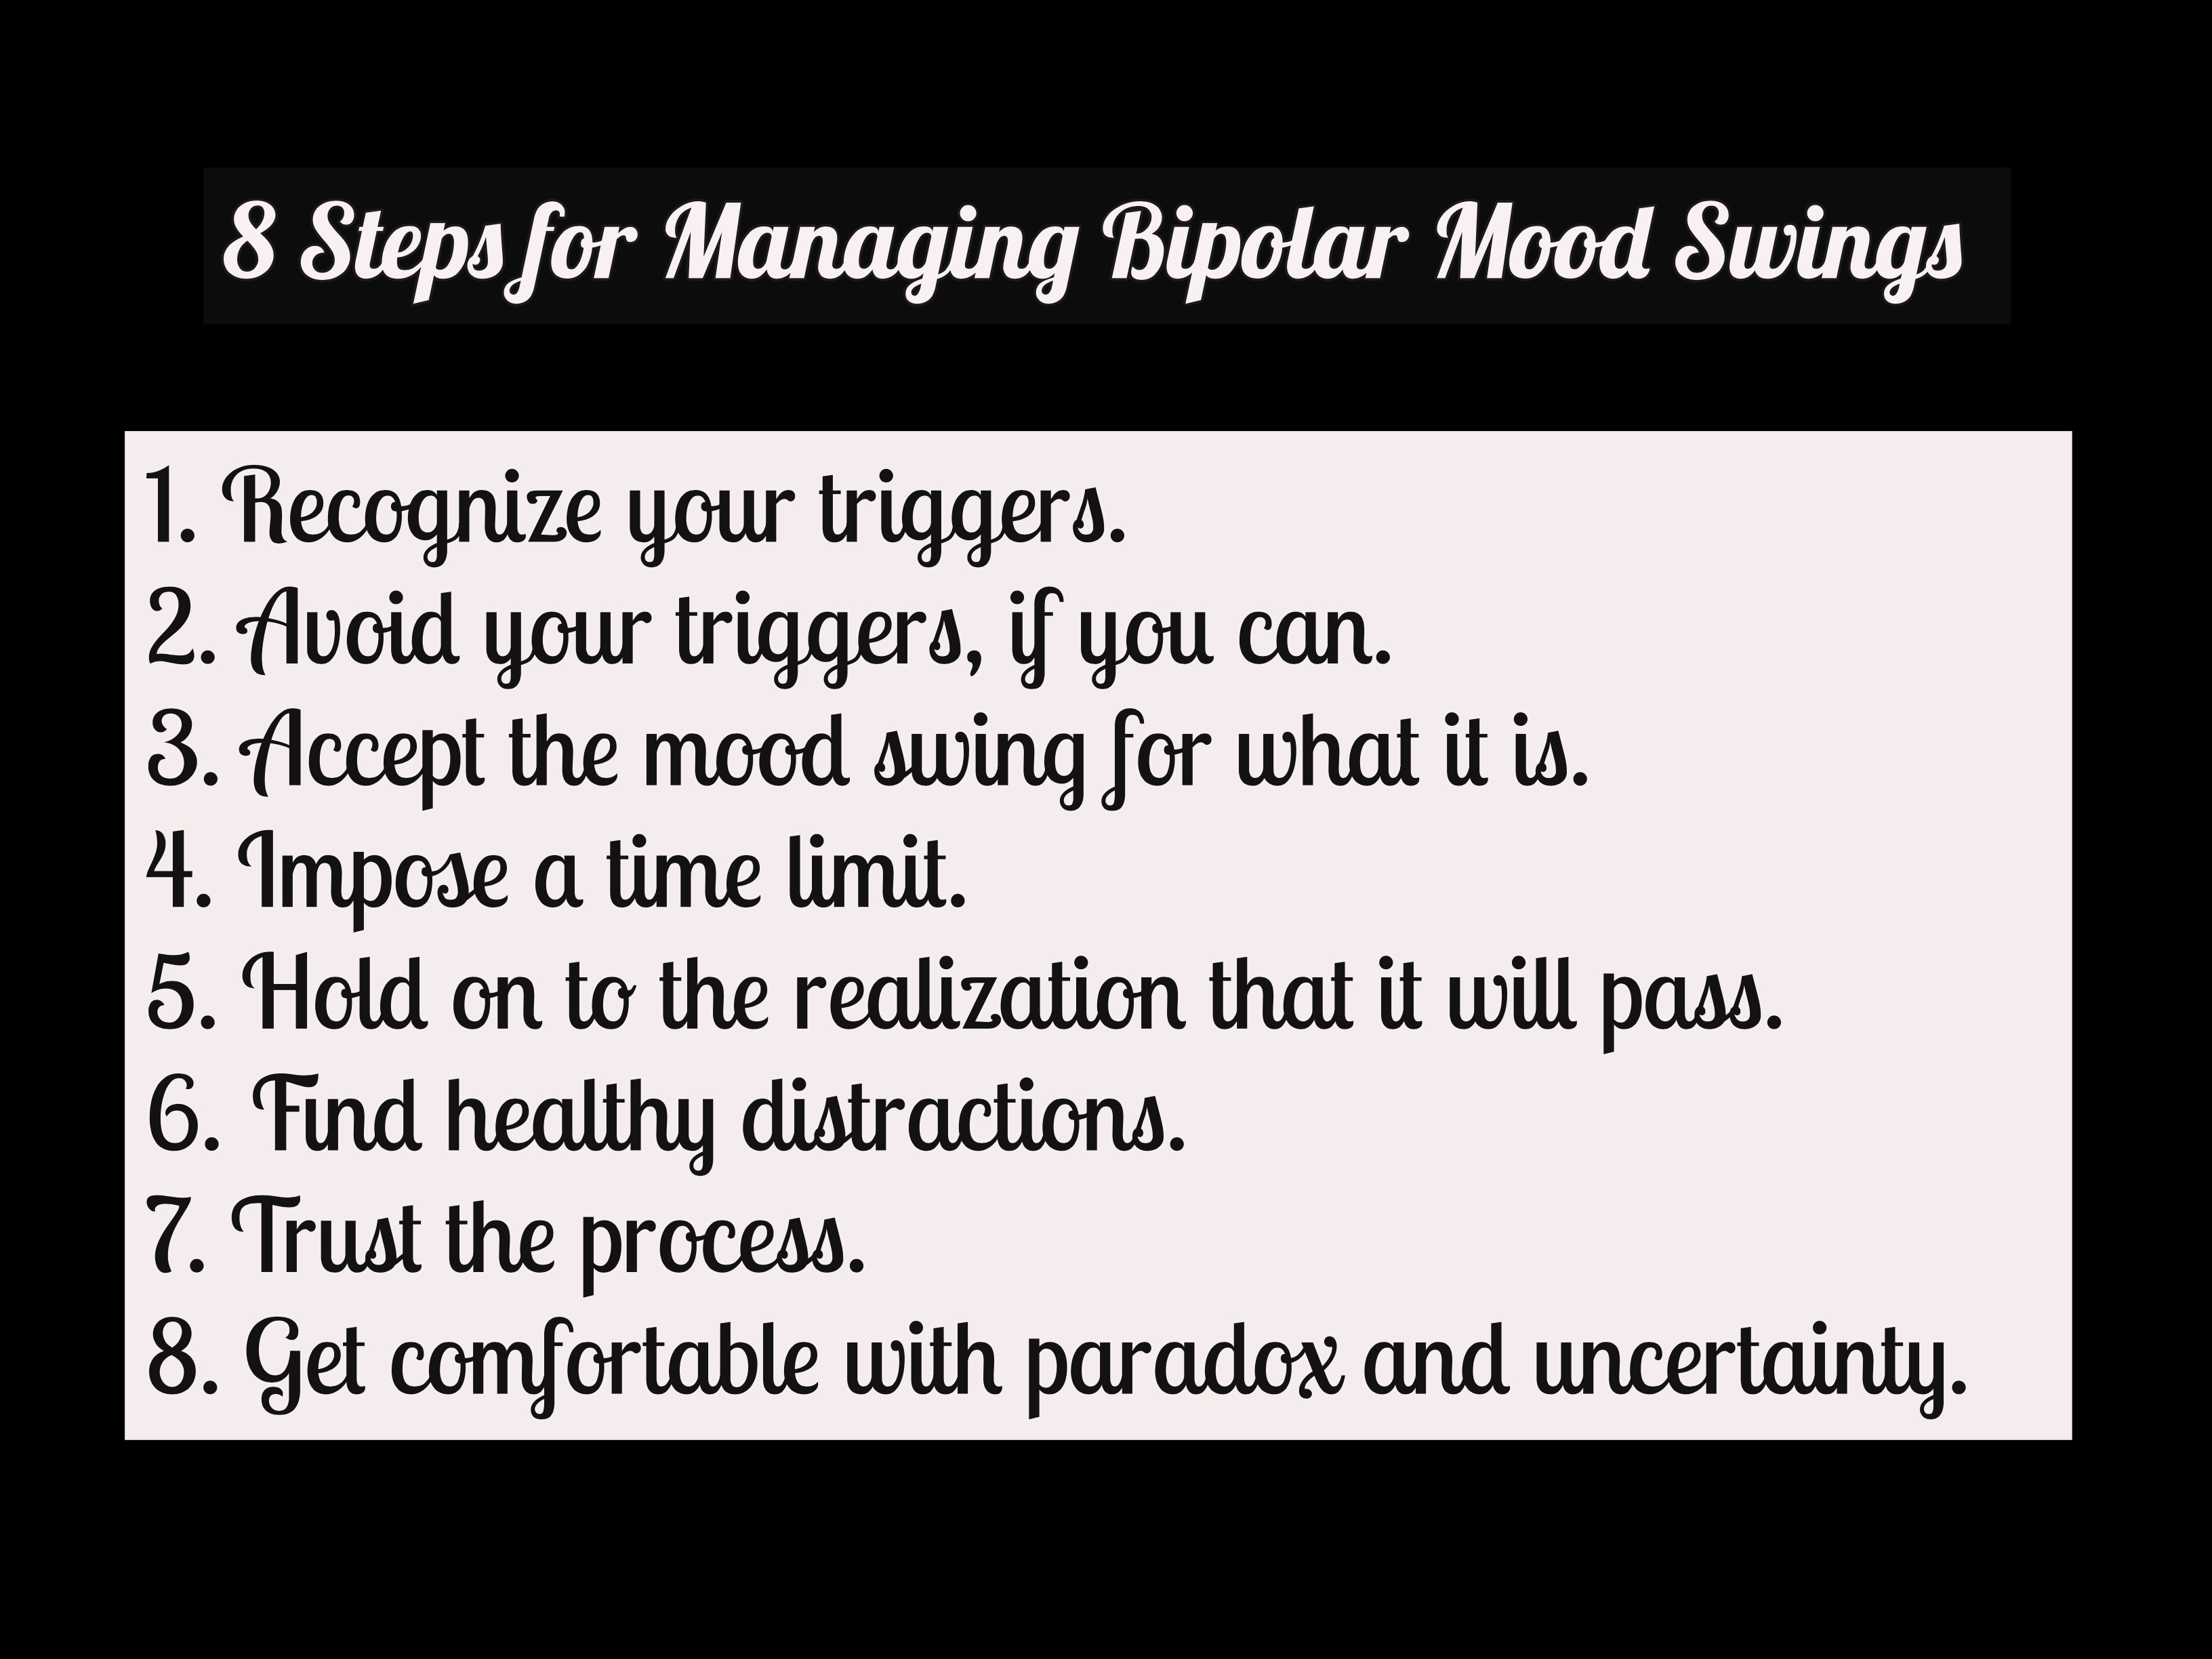 Watch Coping With Bipolar Mood Swings video